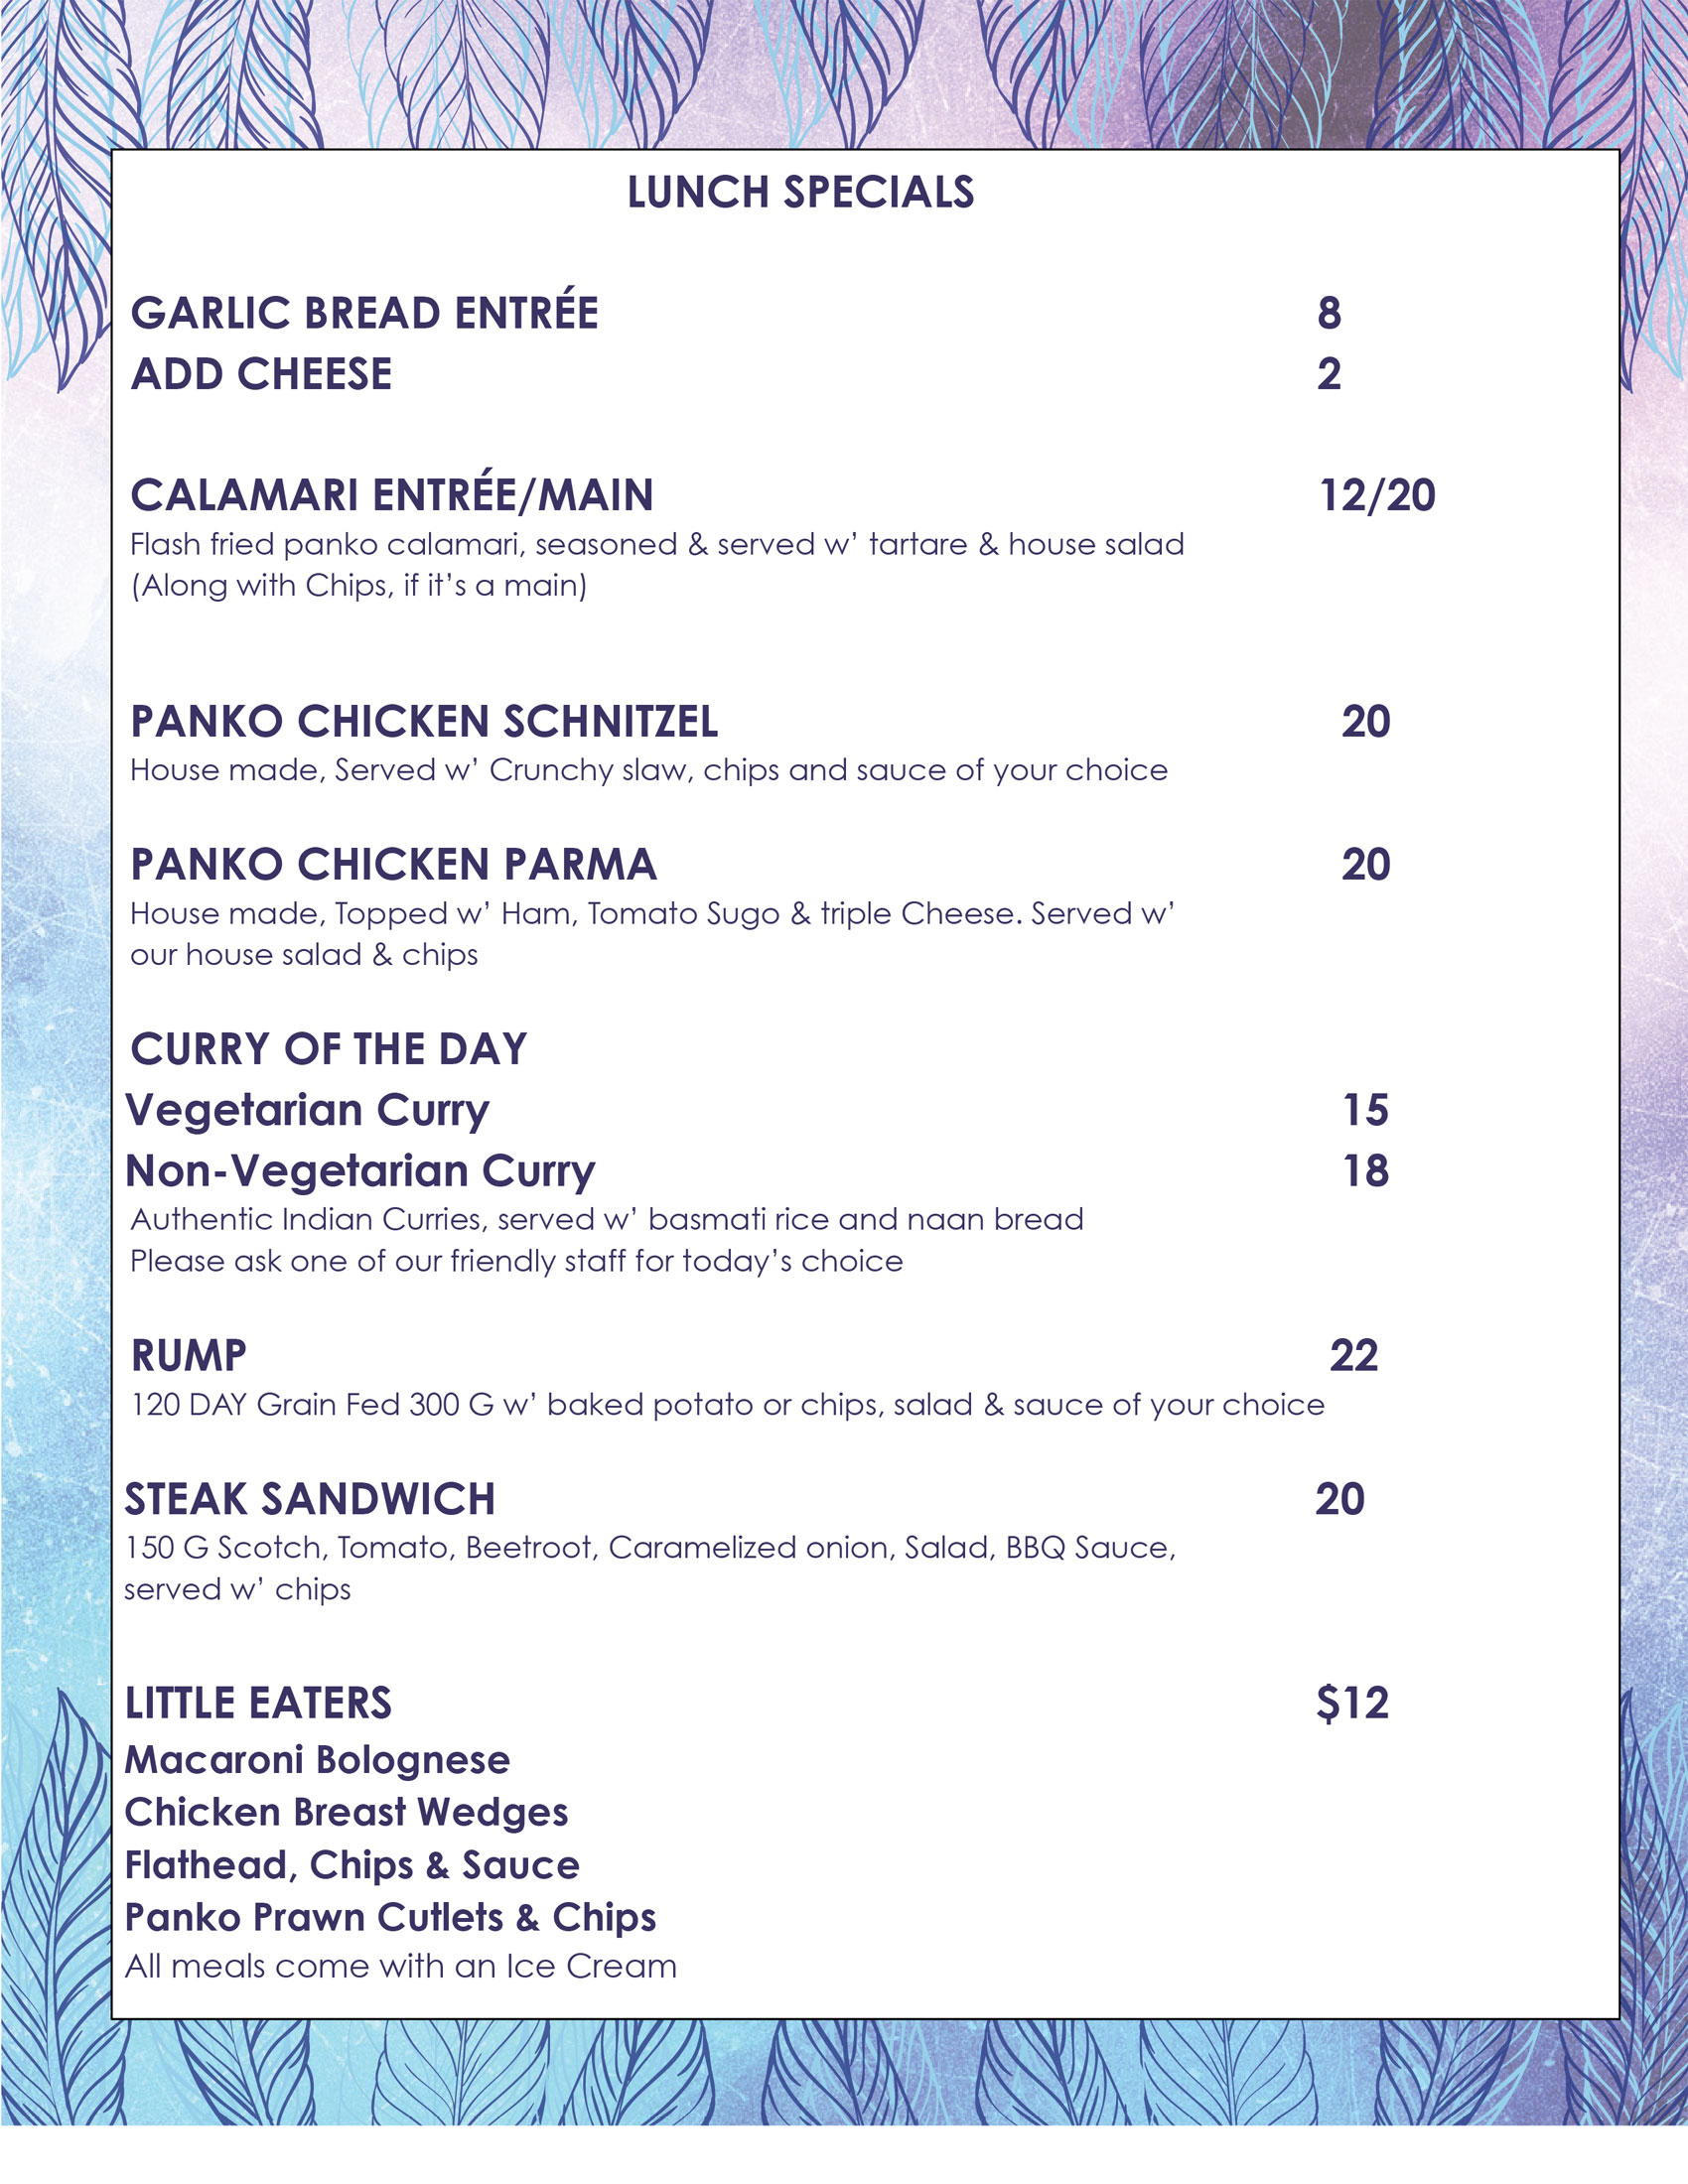 lunch specials at the Merimbula Lakeview